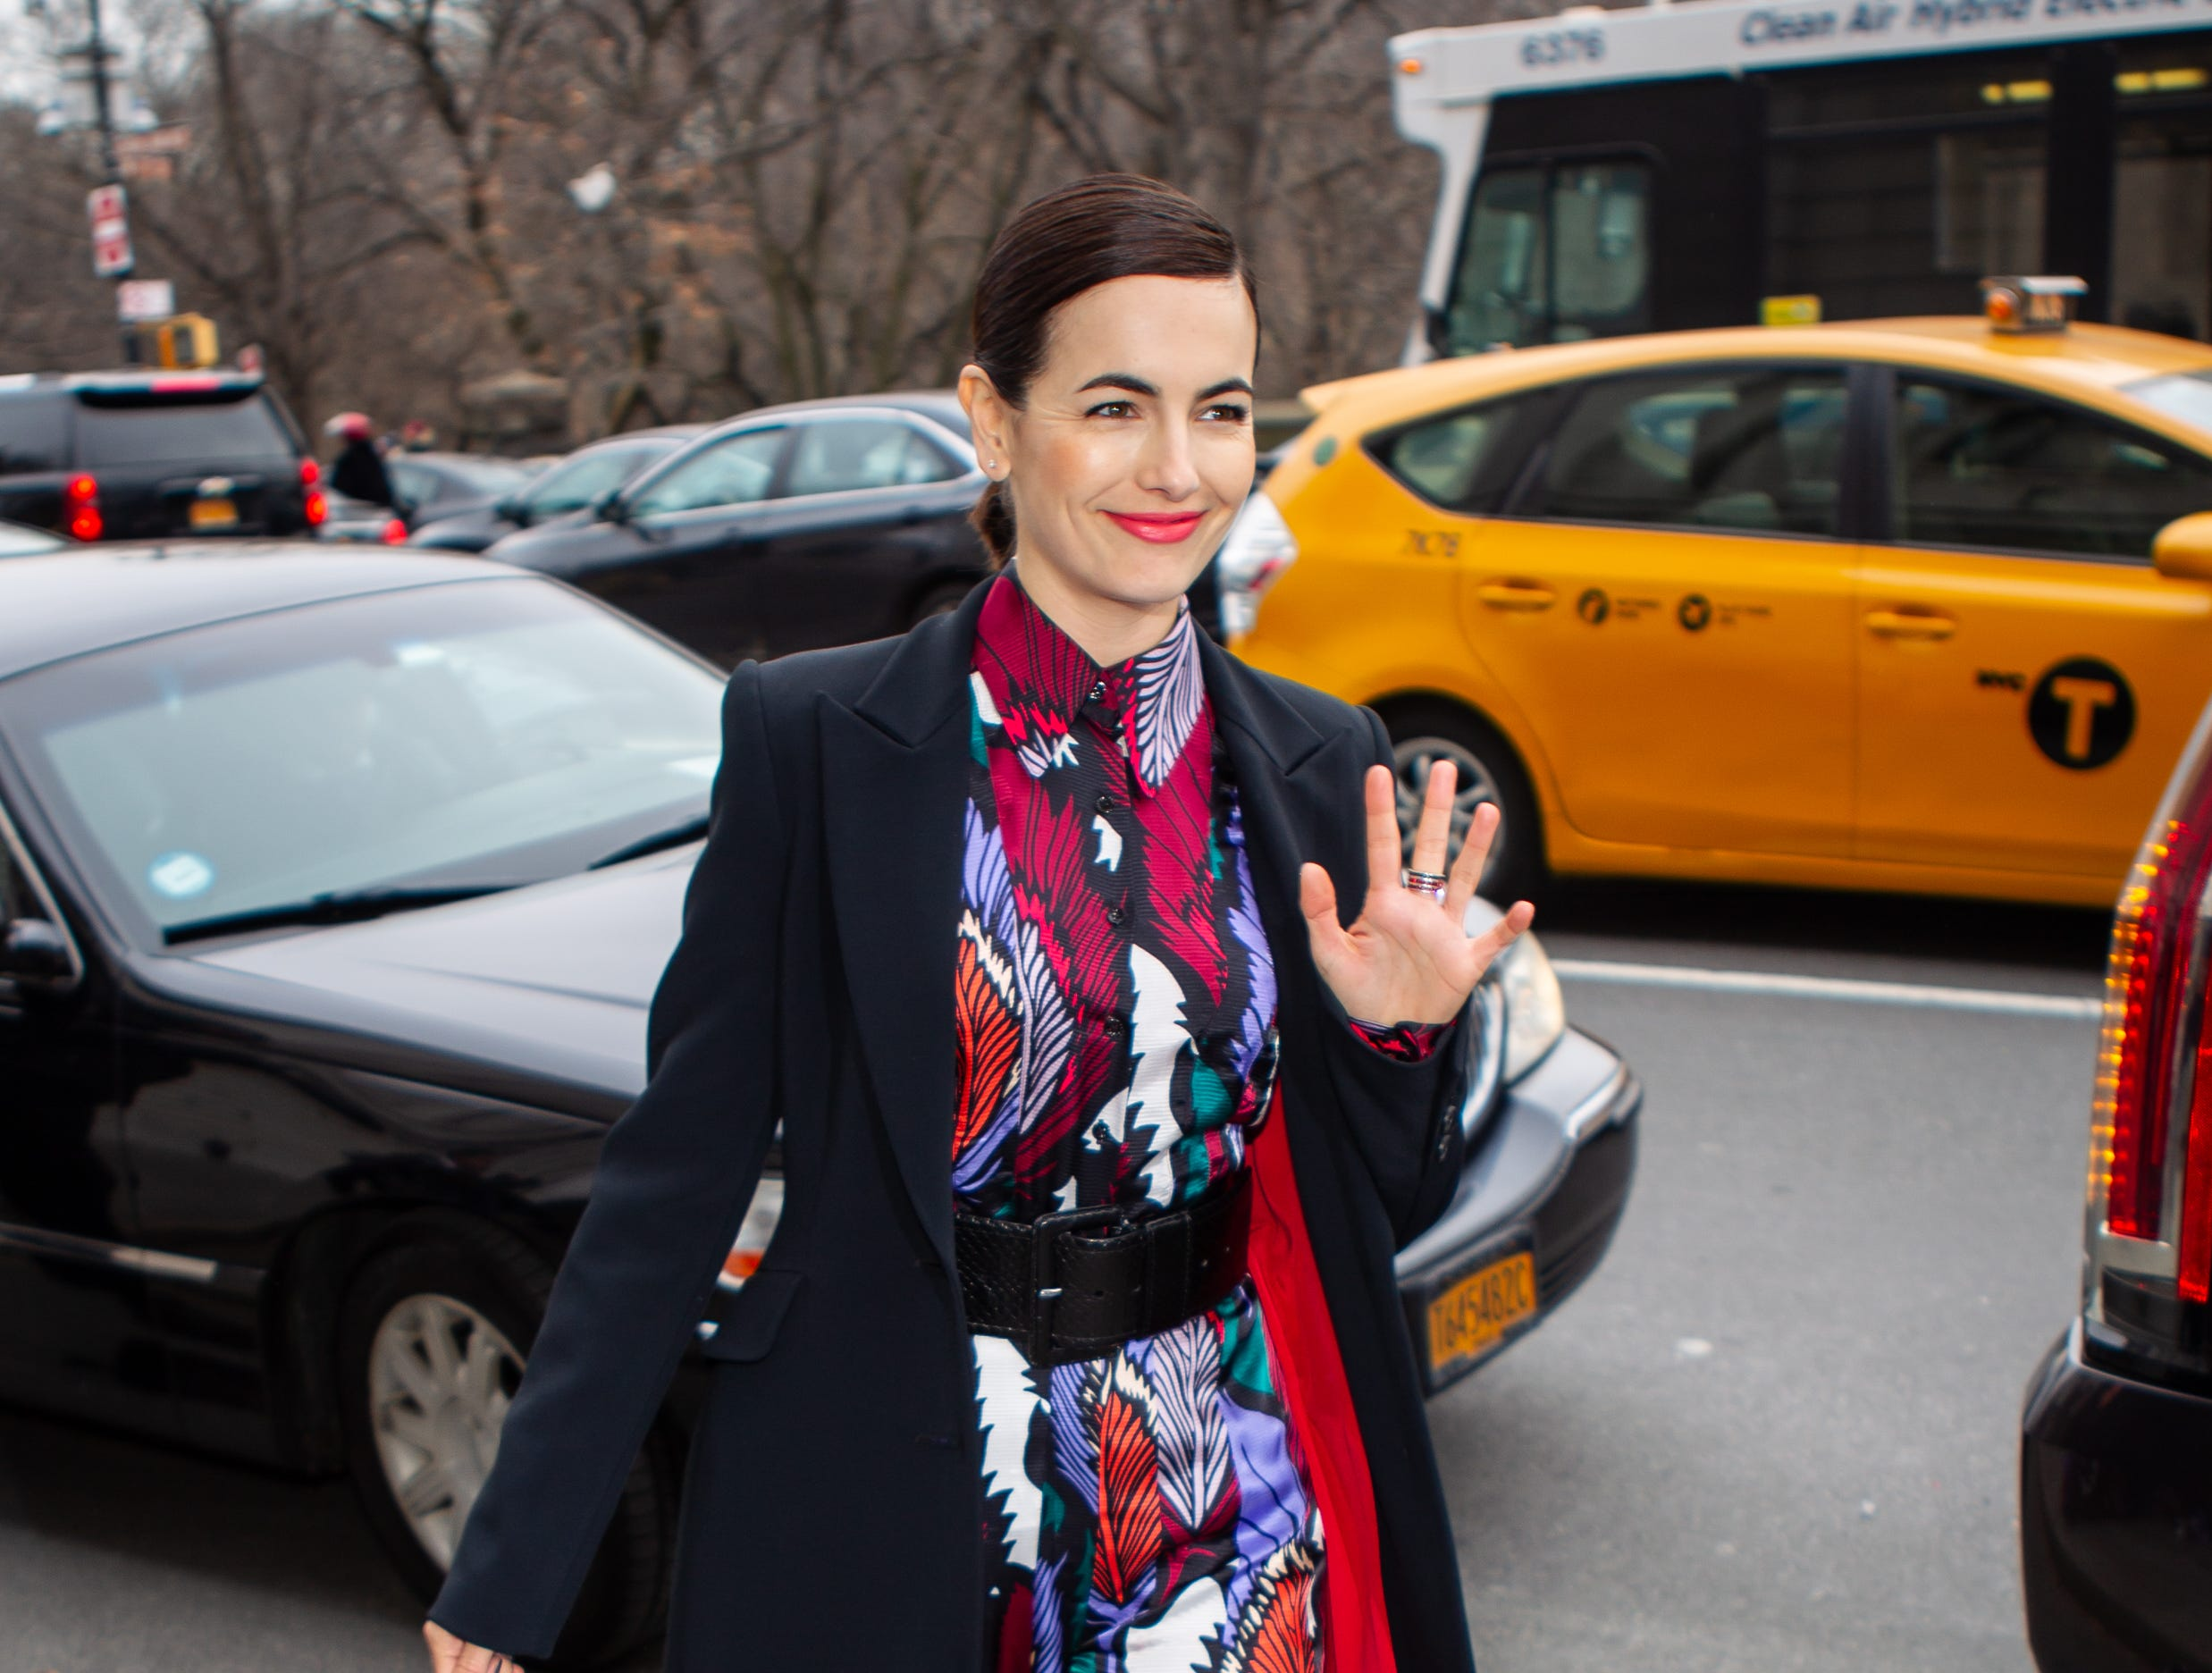 NEW YORK, NEW YORK - FEBRUARY 11: Actress Camilla Belle attends Carolina Herrera fall 2019 runway show during (NYFW) New York Fashion Week held at New York Historical Society 170 Central Park West on February 11, 2019 in New York City. (Photo by Anthony DelMundo/Getty Images) ORG XMIT: 775280126 ORIG FILE ID: 1129012393